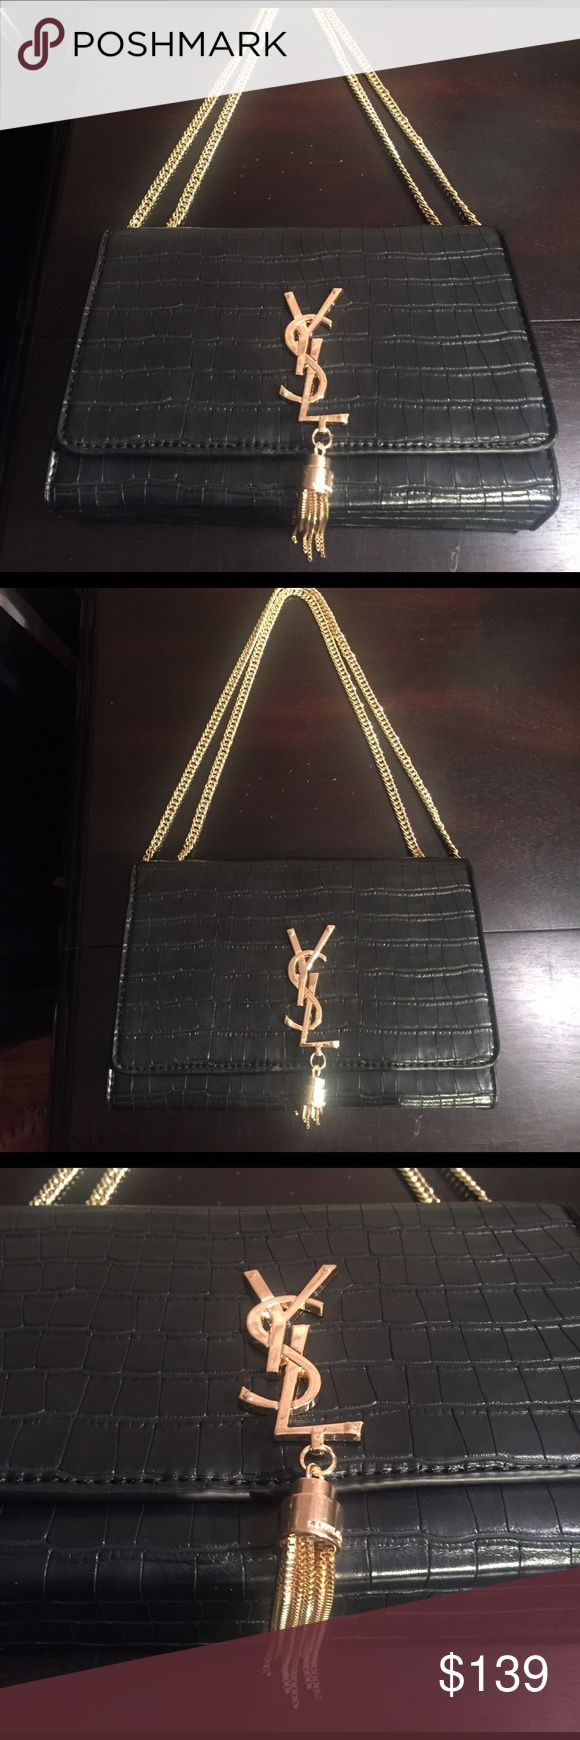 NWOT YSL HANDBAG Never used! Black with gold chain that can be worn short or long. Cute gold tassel adds a nice touch! Gorgeous bag! Yves Saint Laurent Bags Shoulder Bags